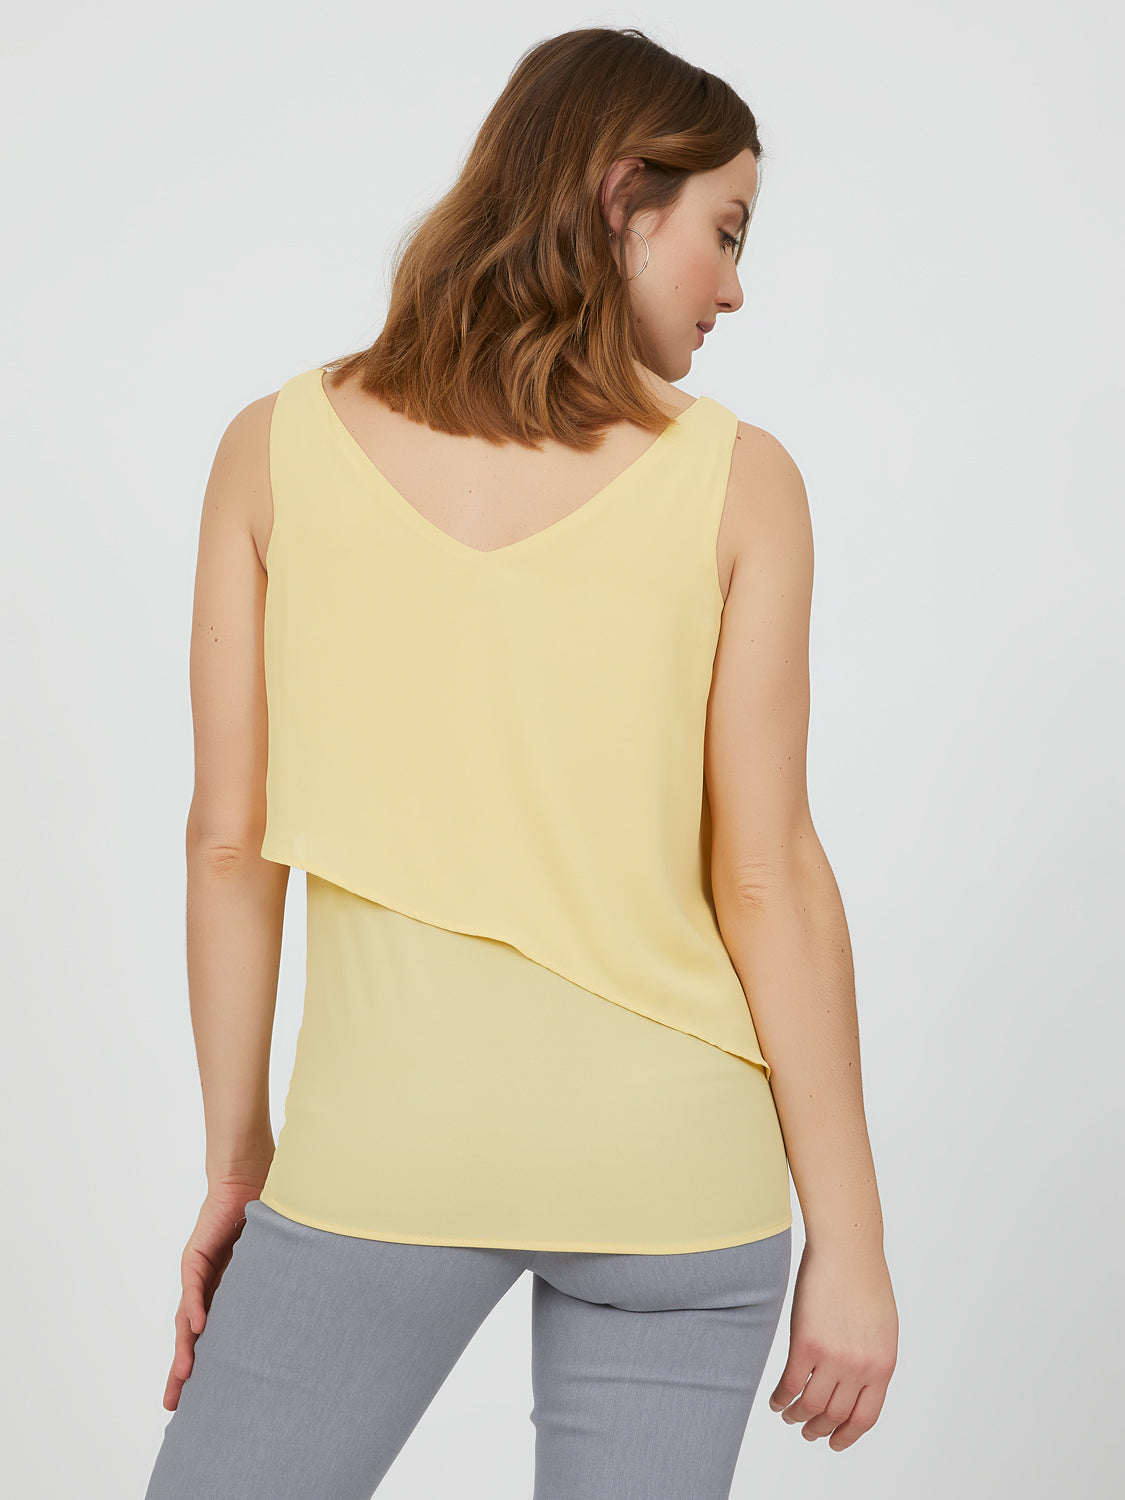 Sleeveless Double Layer V-Neck Top